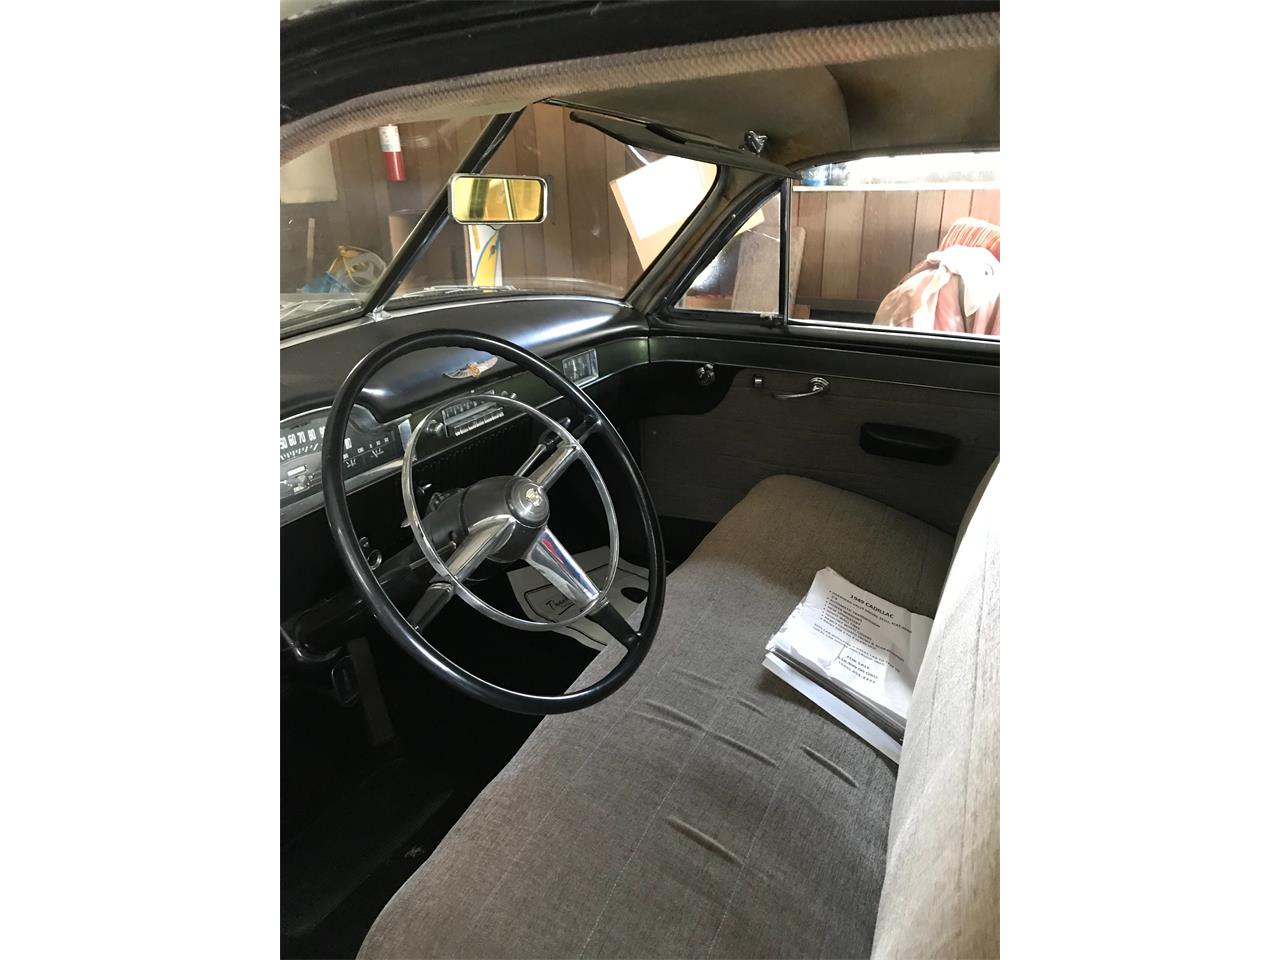 1949 Cadillac 4-Dr Sedan for sale in Land O Lakes, FL – photo 22